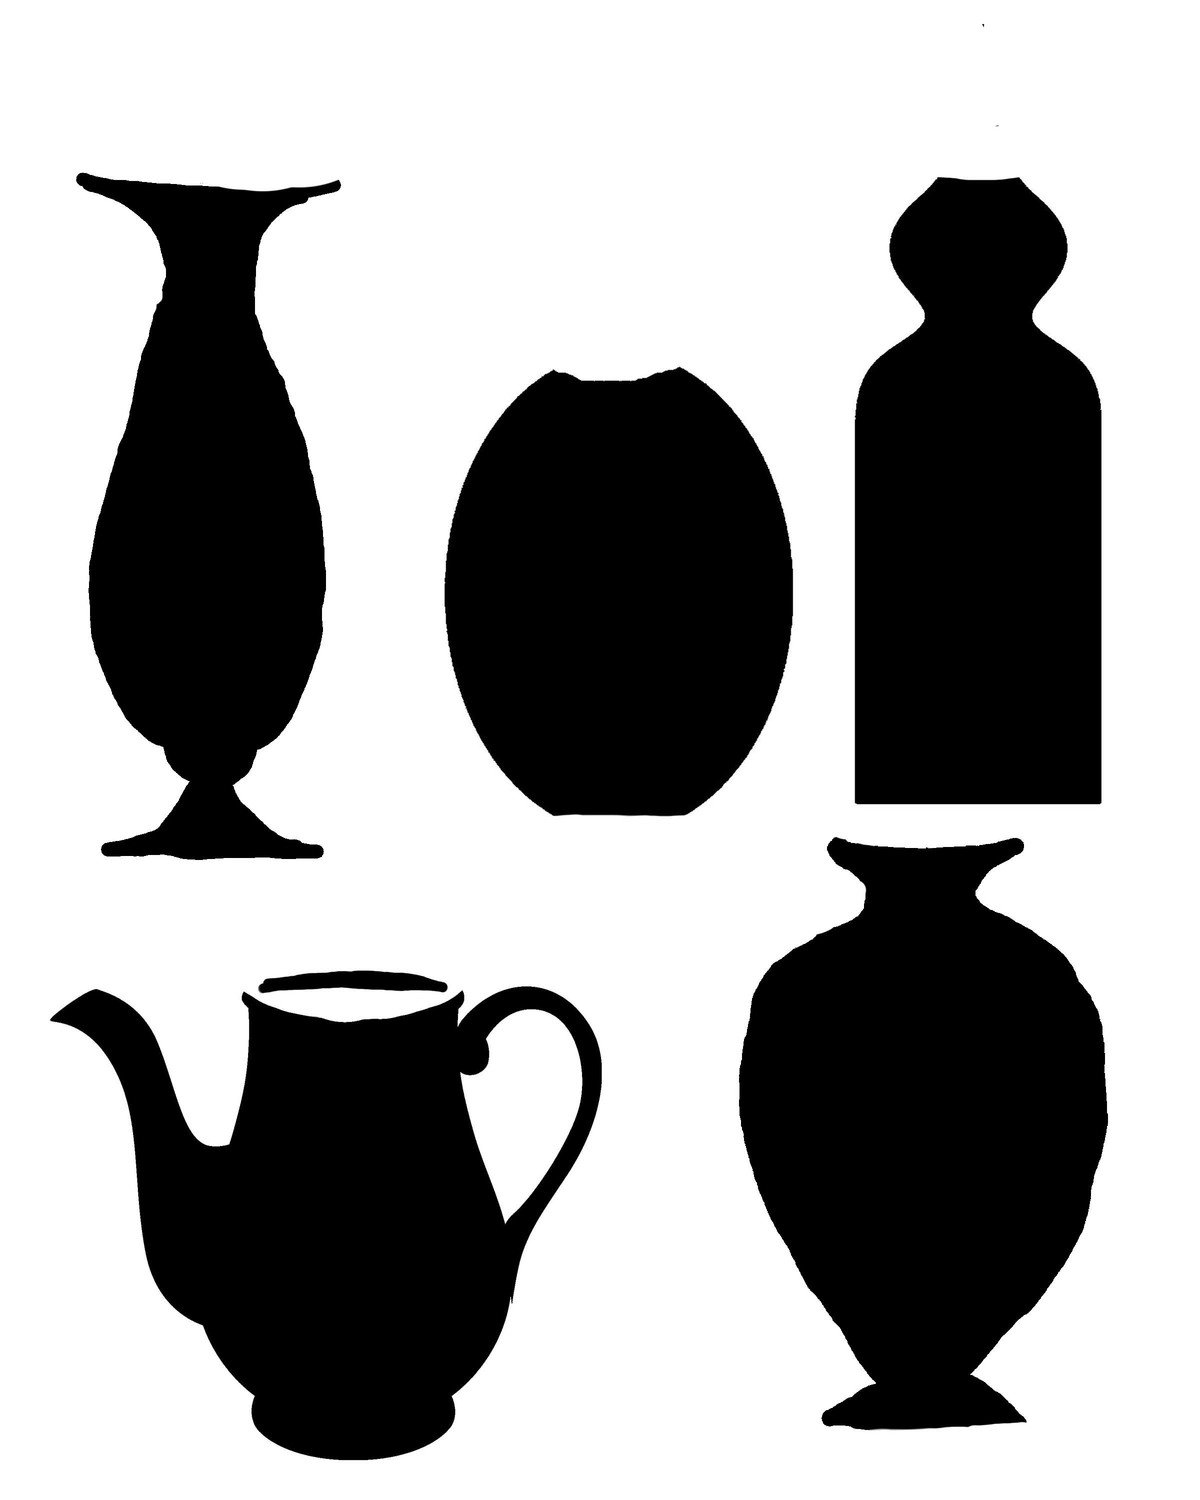 vases 1 with masks stencil